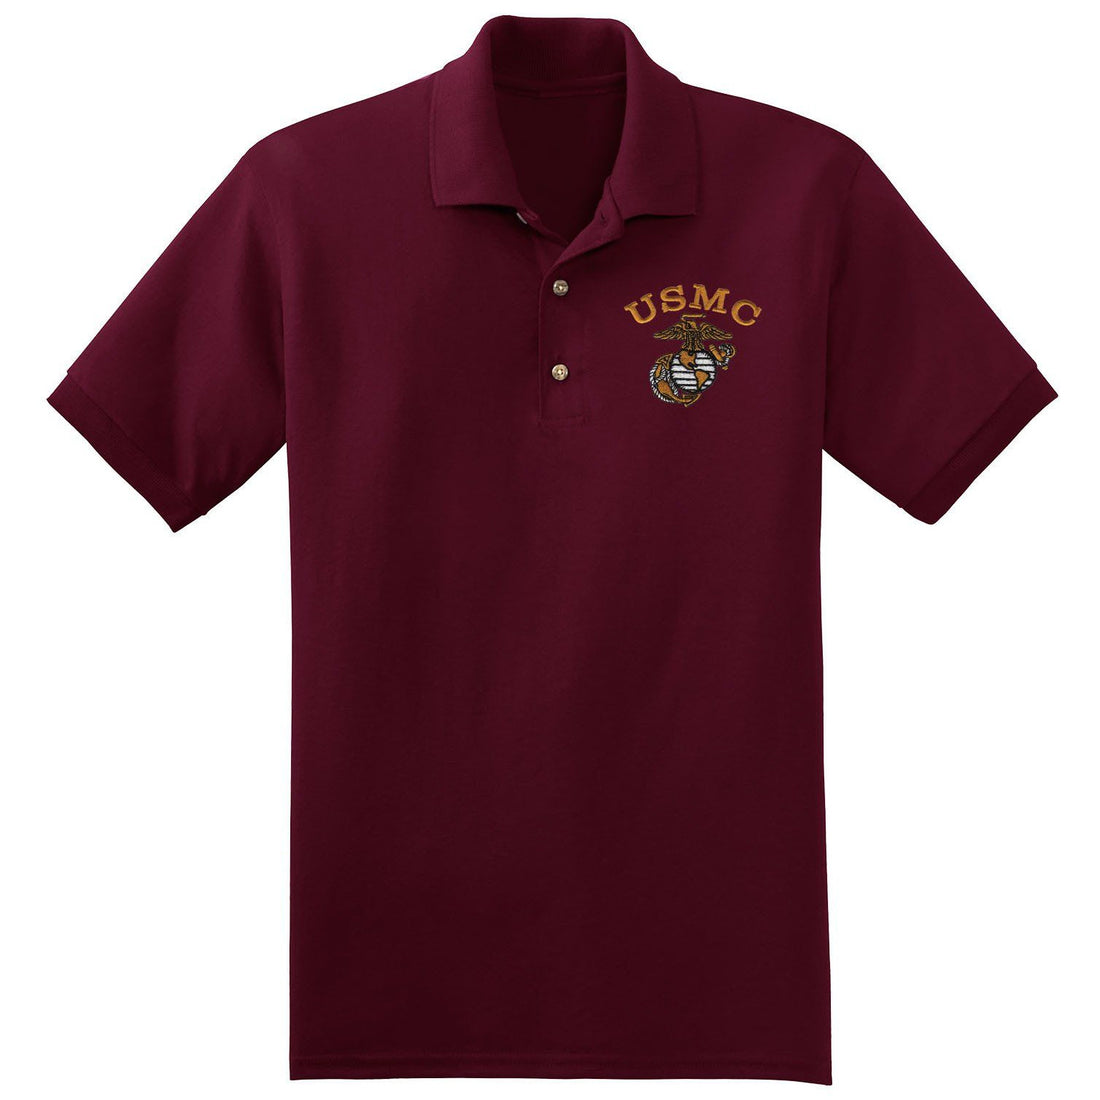 USMC Embroidered Polo (MULTIPLE COLORS) - Marine Corps Direct  - 3